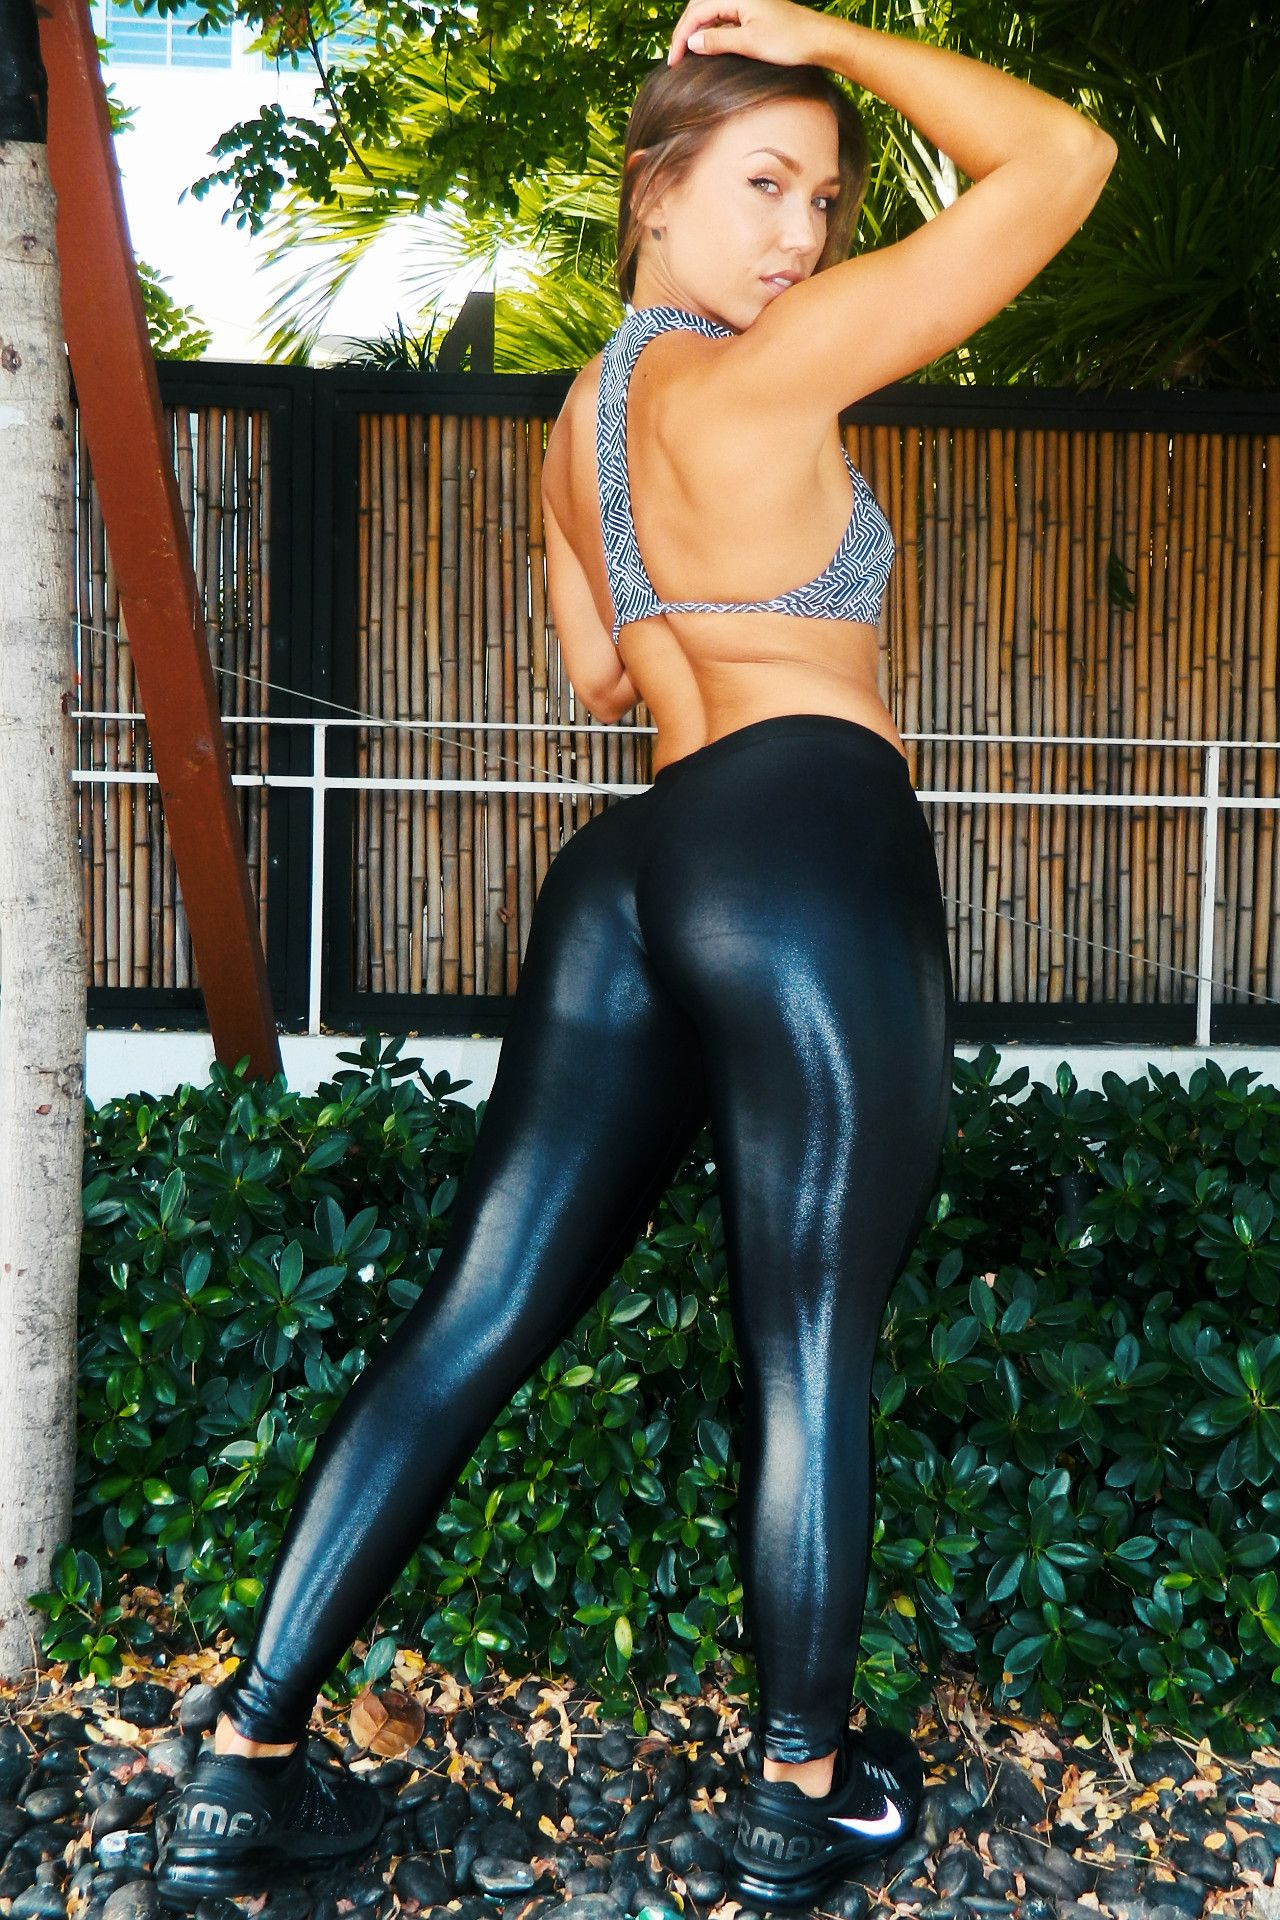 Shiny black  wetlook  workout  leggings  Posing outside.  00de617da01c